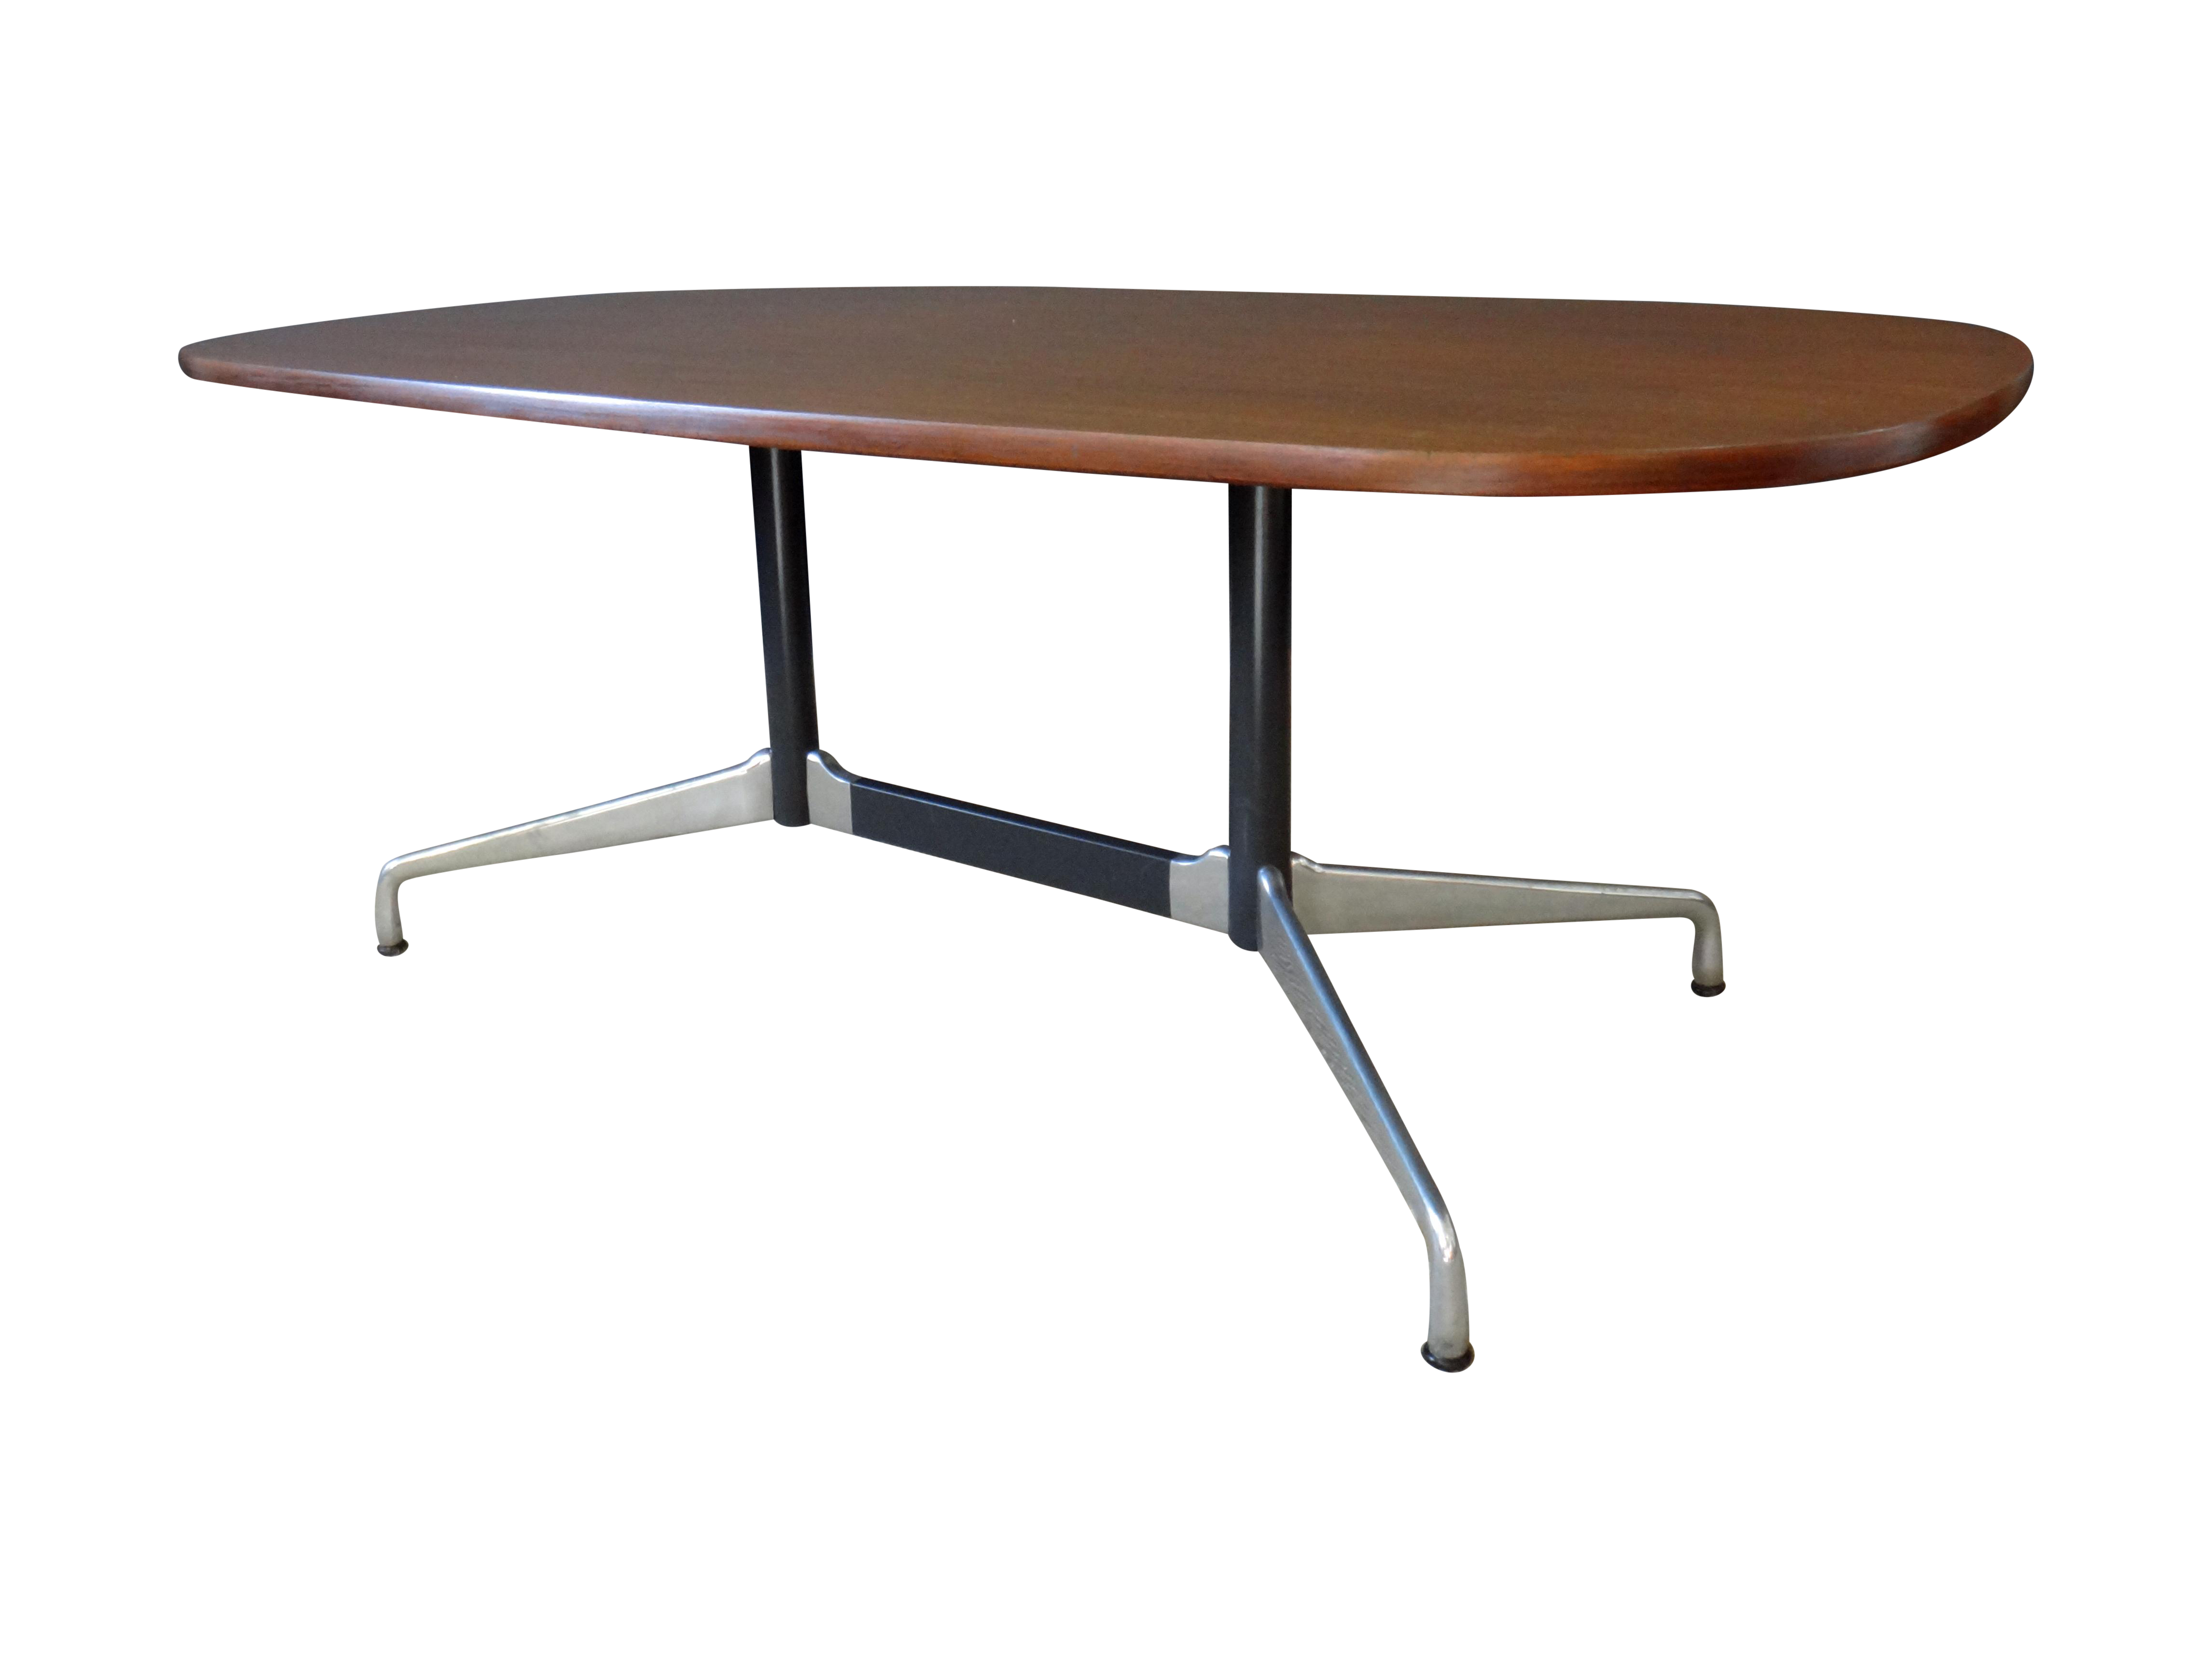 Eames for Herman Miller Large Oval Table Chairish : 5632f50d cfcd 49d0 8f60 abdfbbcc1d98aspectfitampwidth640ampheight640 from www.chairish.com size 640 x 640 jpeg 15kB